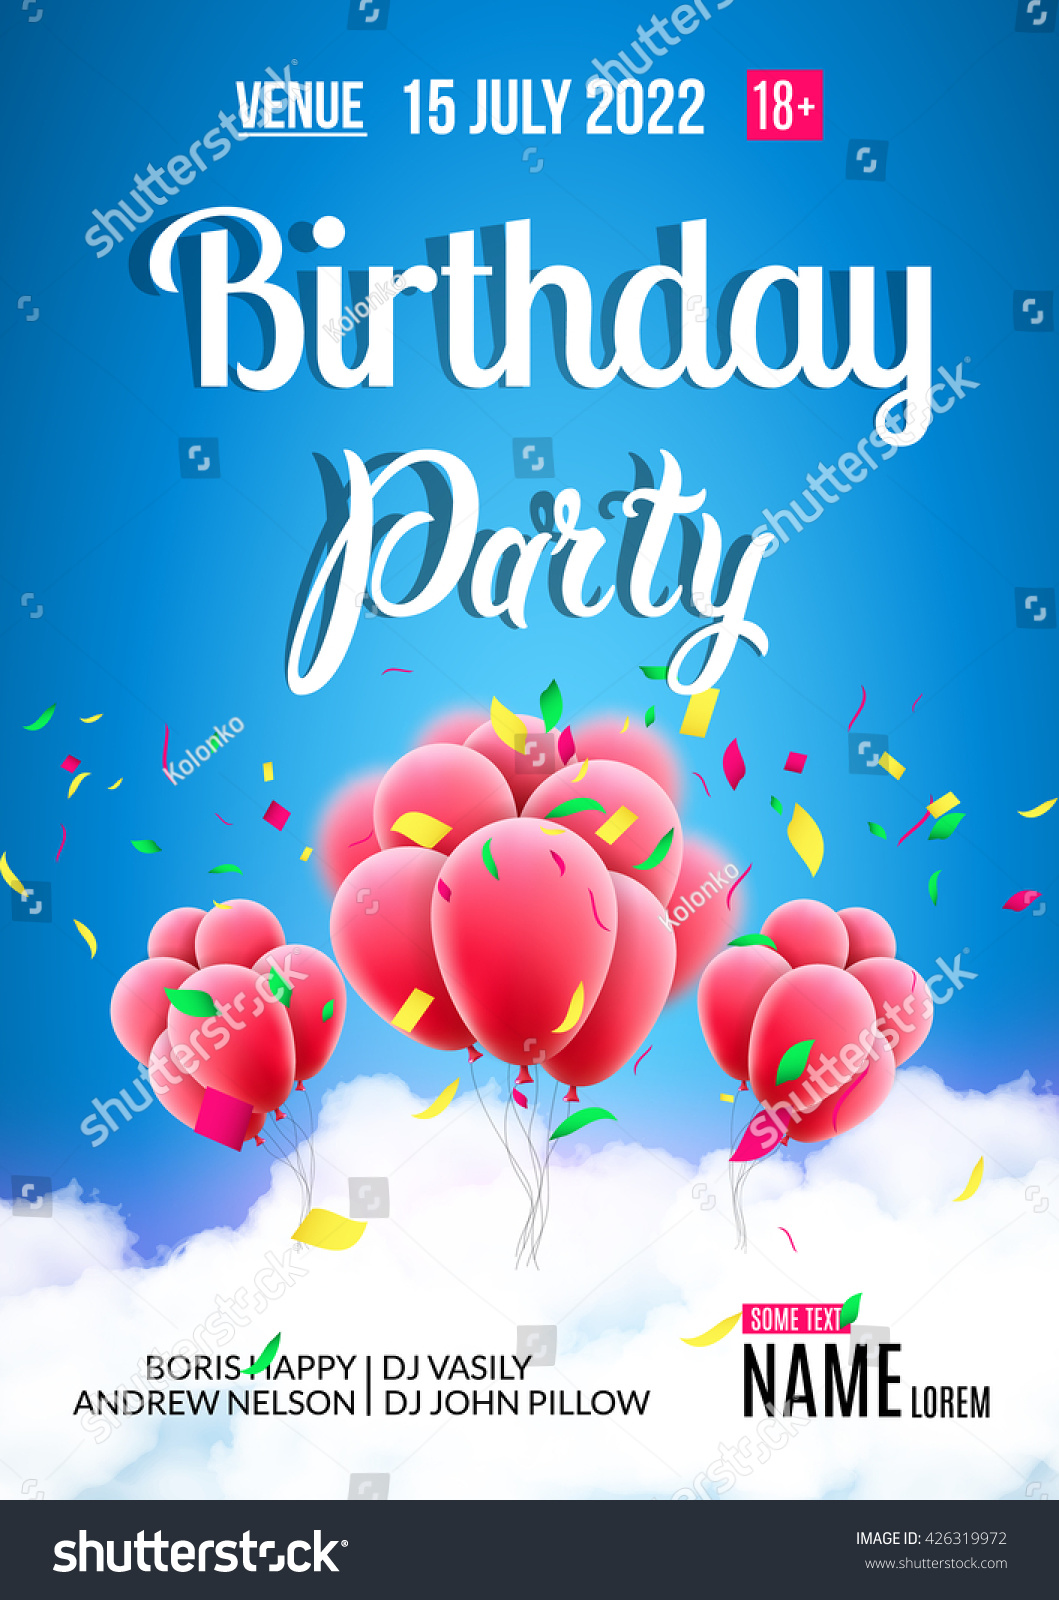 Birthday party poster Sky clouds happy birthday balloons with confetti